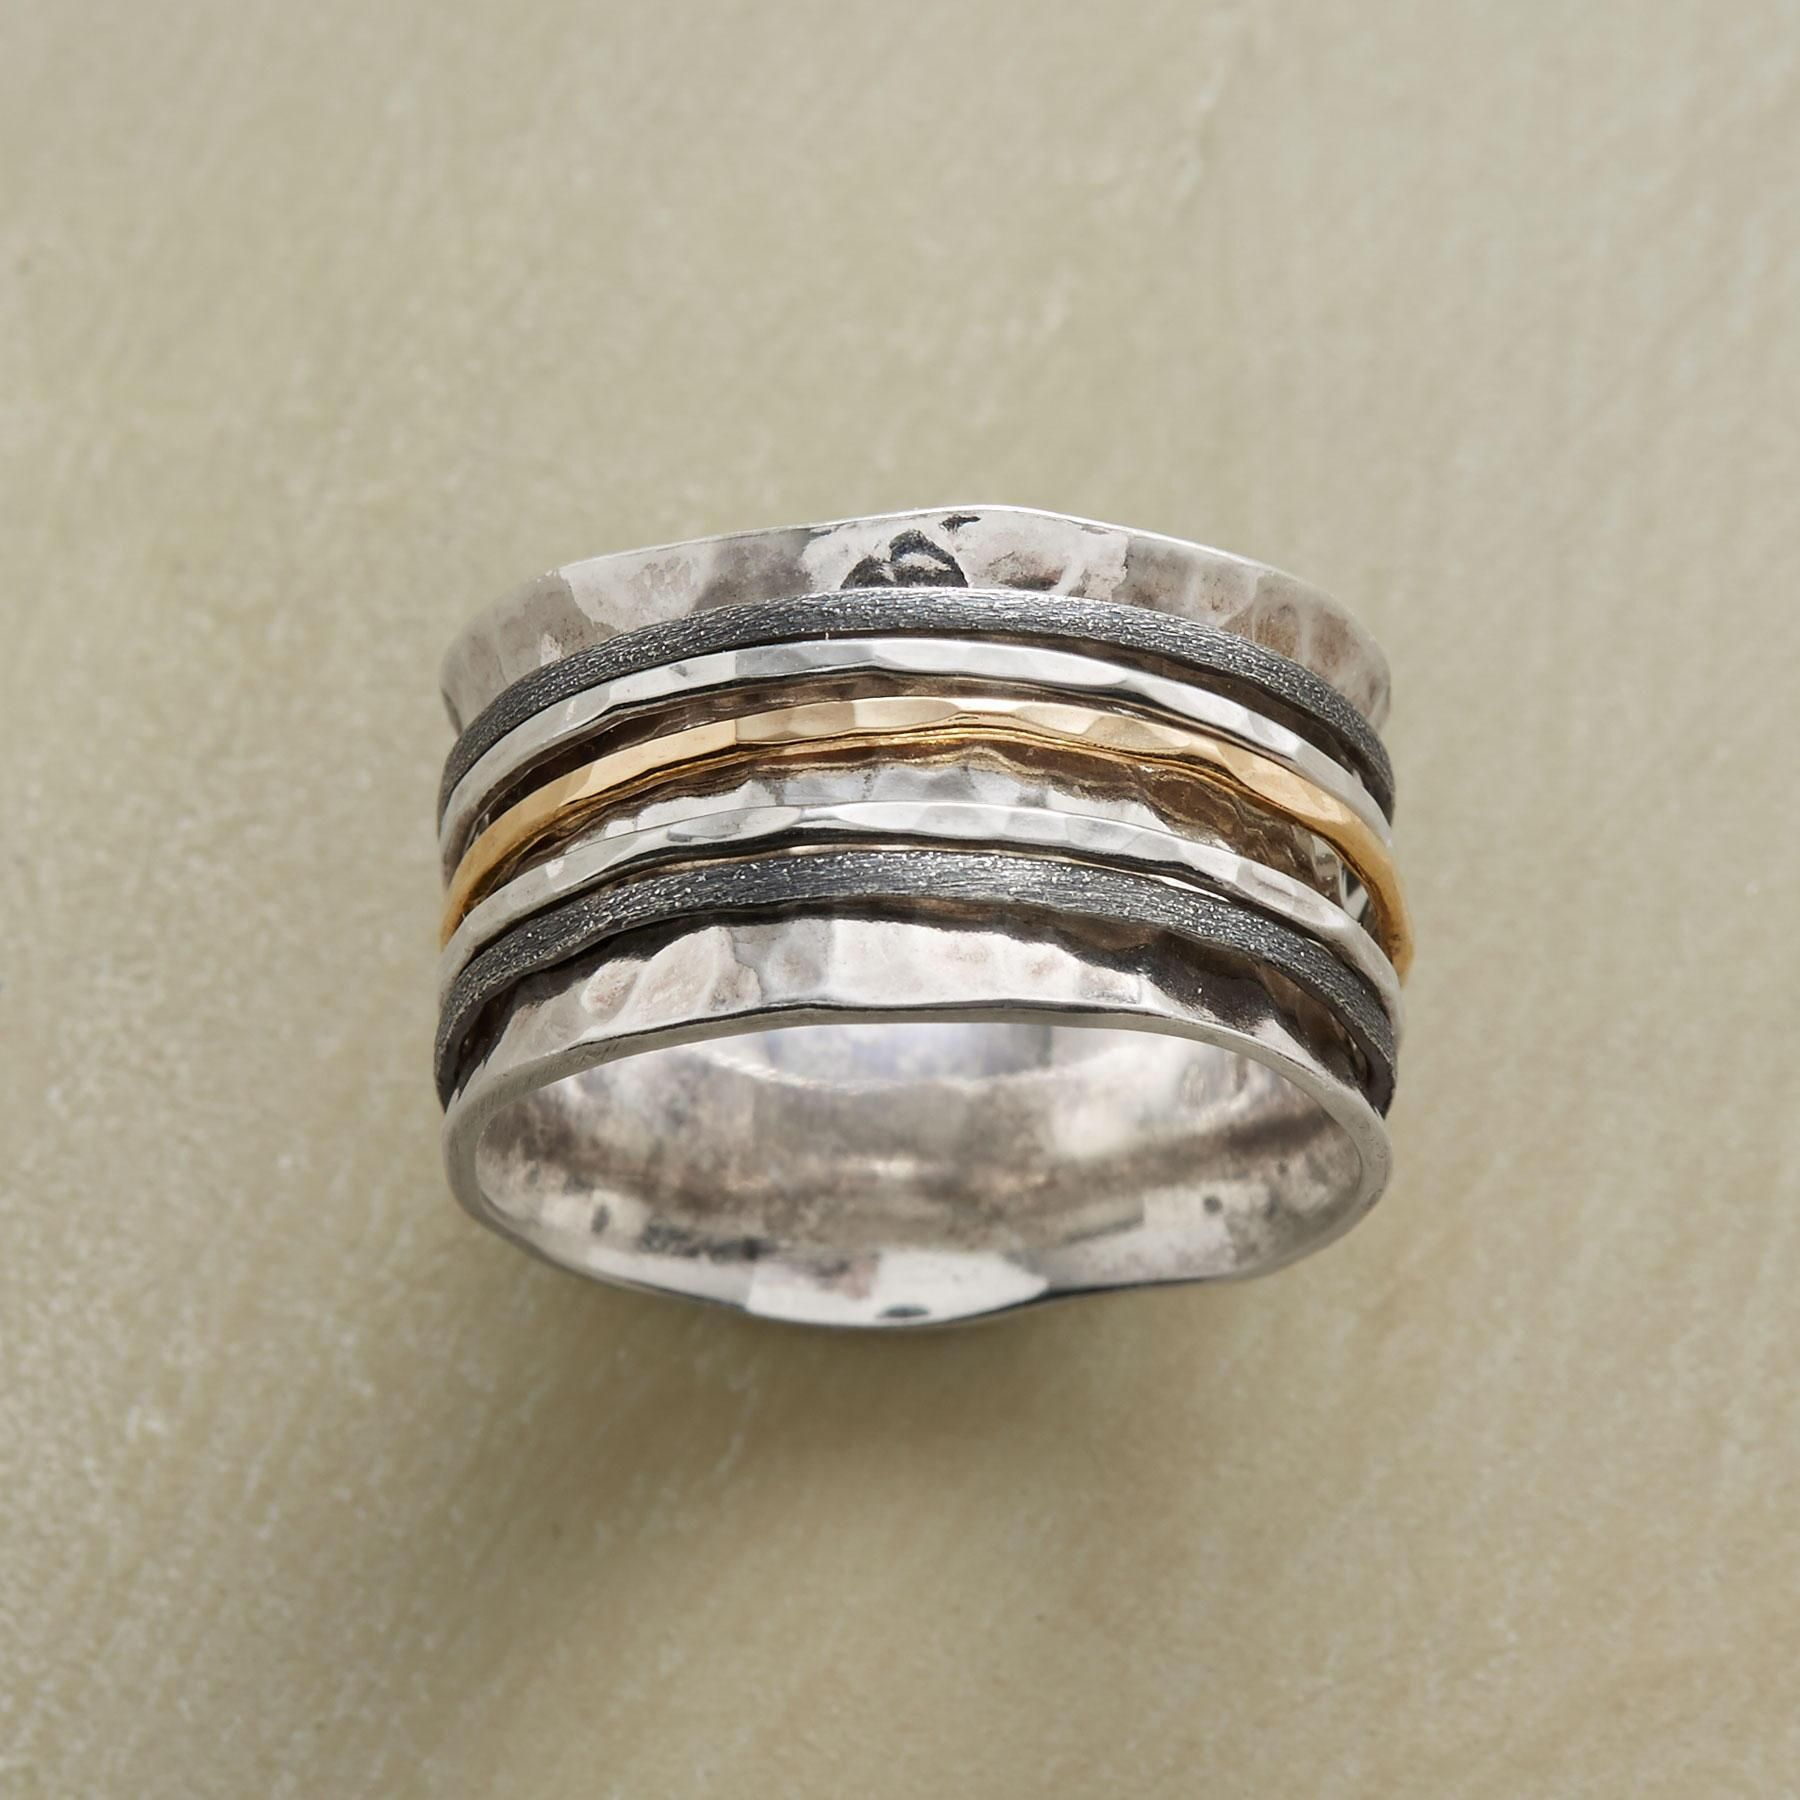 "SPOOLED SPINNER RING -- In this mixed-metal spinner ring, five slender rings of sterling silver and 14kt gold spin upon a spooled band of hand-hammered sterling silver. Whole sizes 5 to 9. 1/2""W."